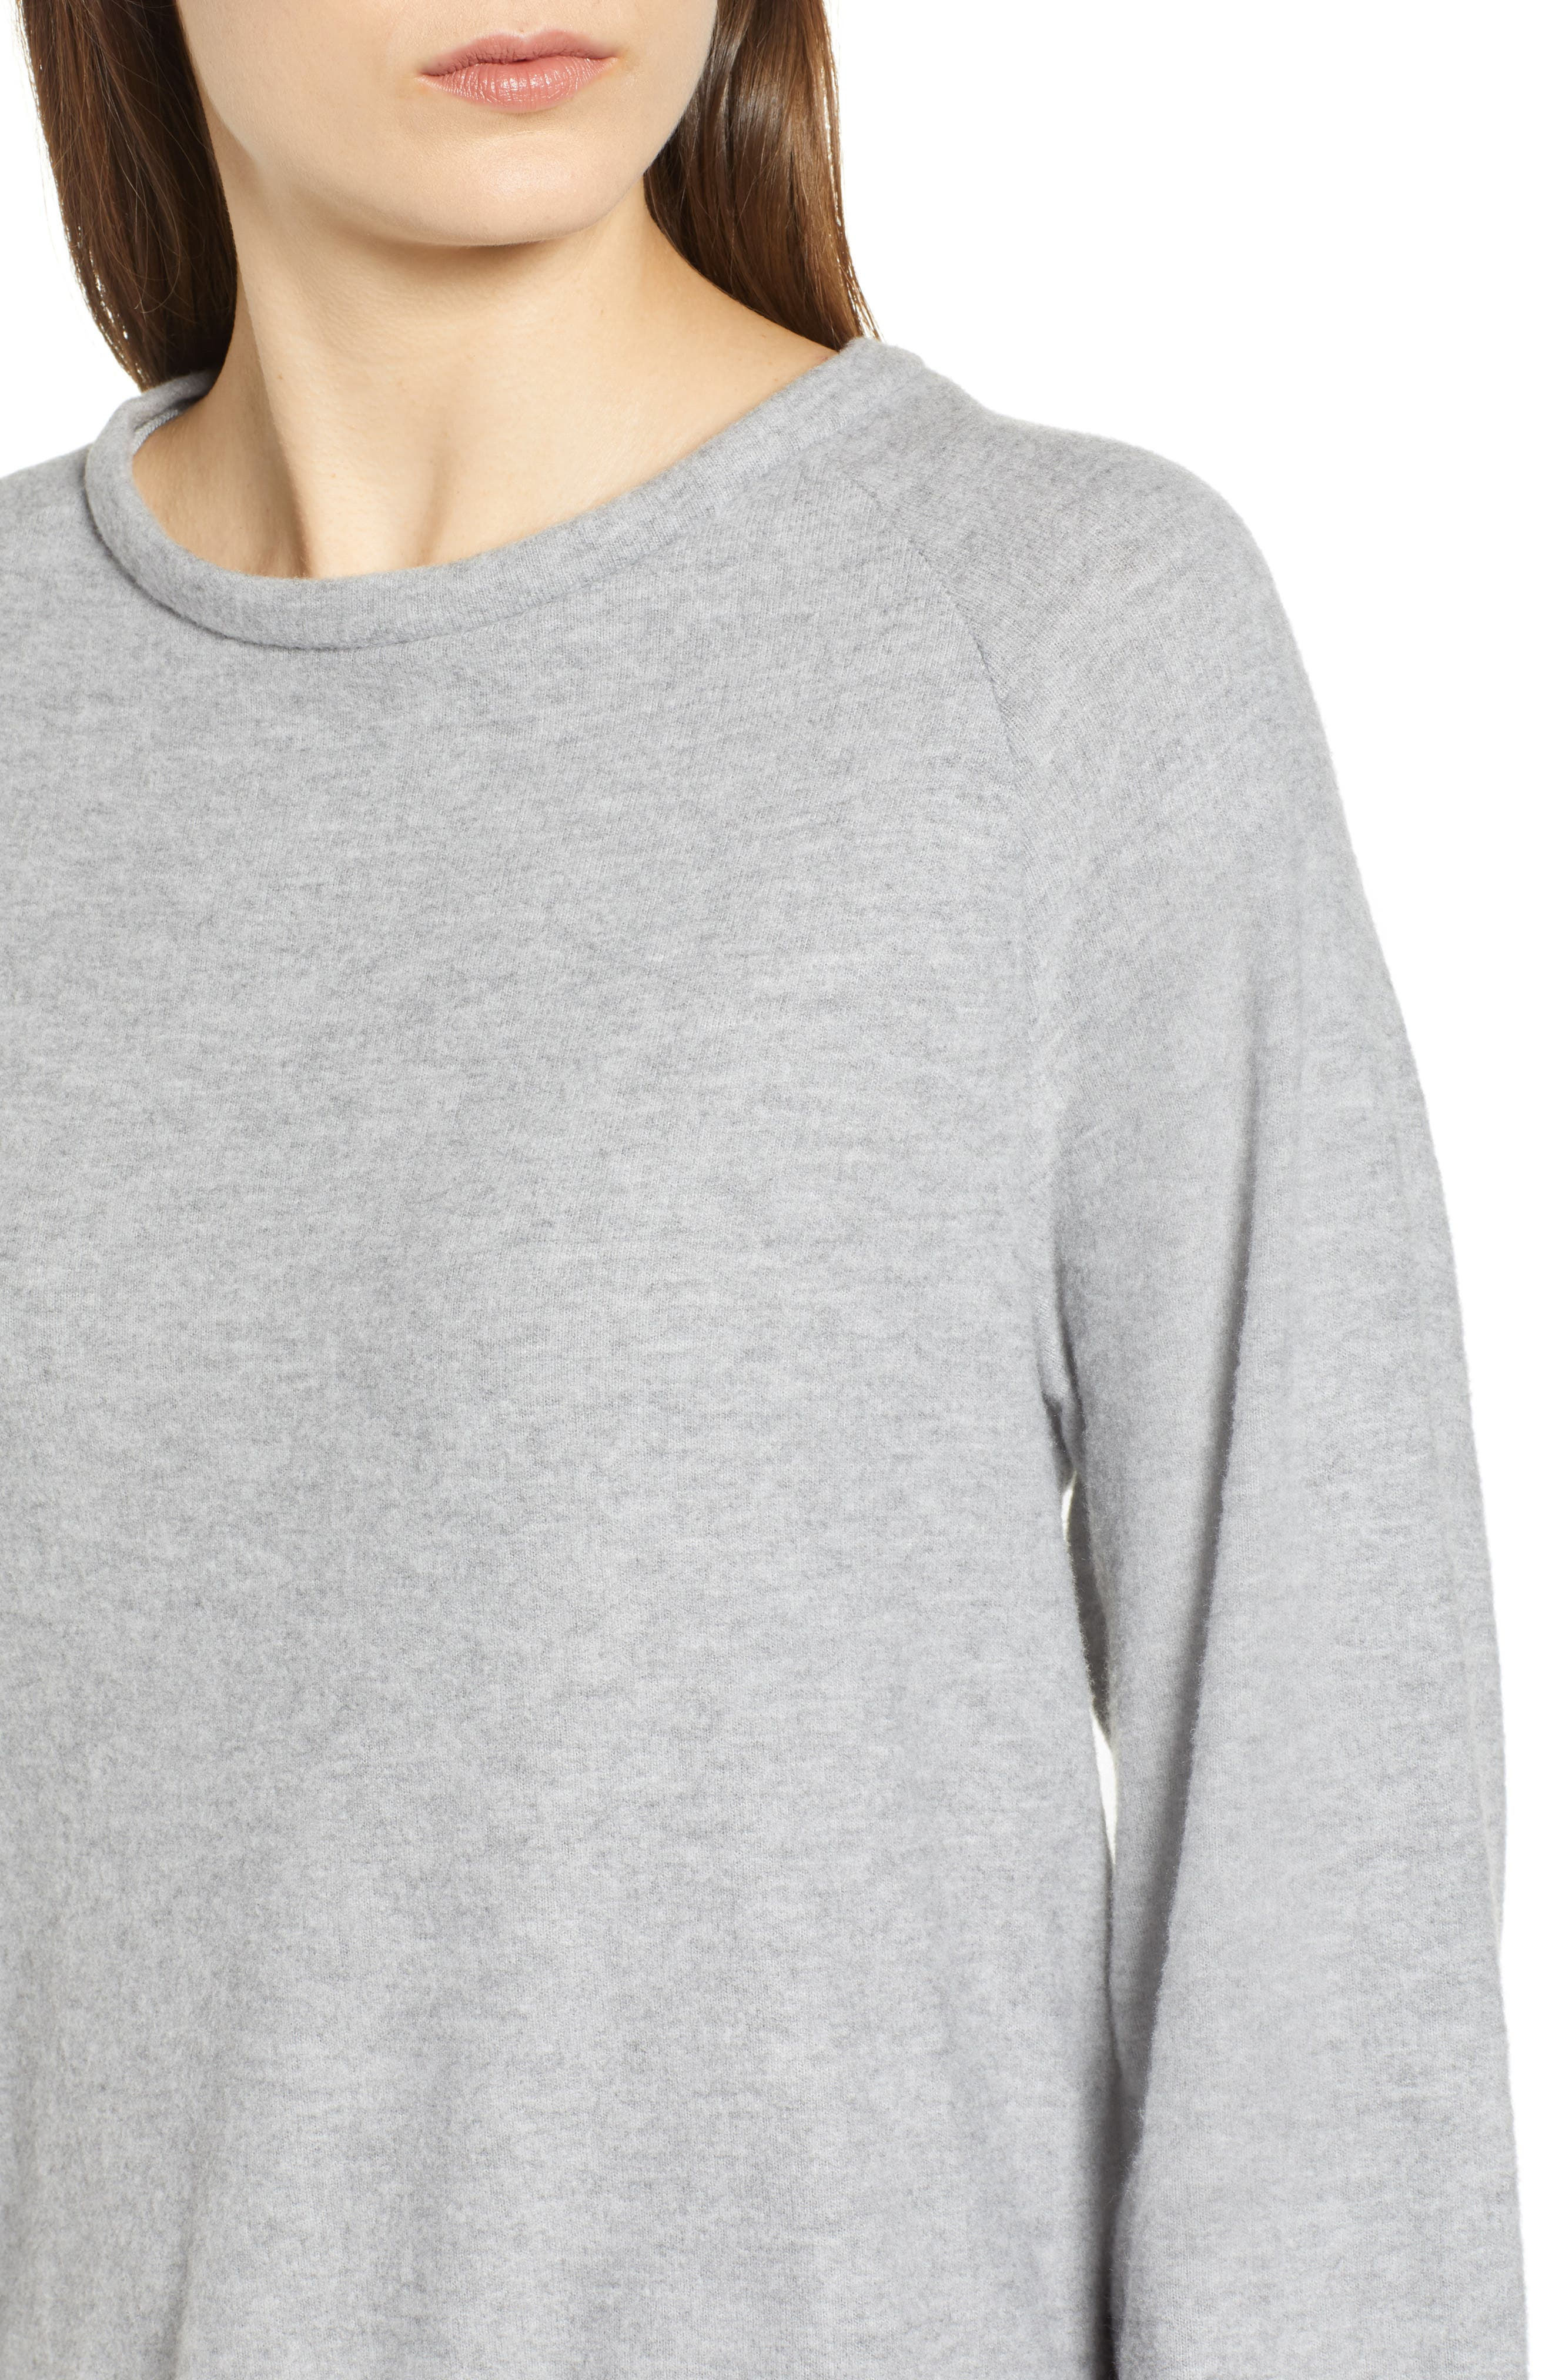 After Hours Open Back Sweatshirt,                             Alternate thumbnail 4, color,                             HEATHER GREY